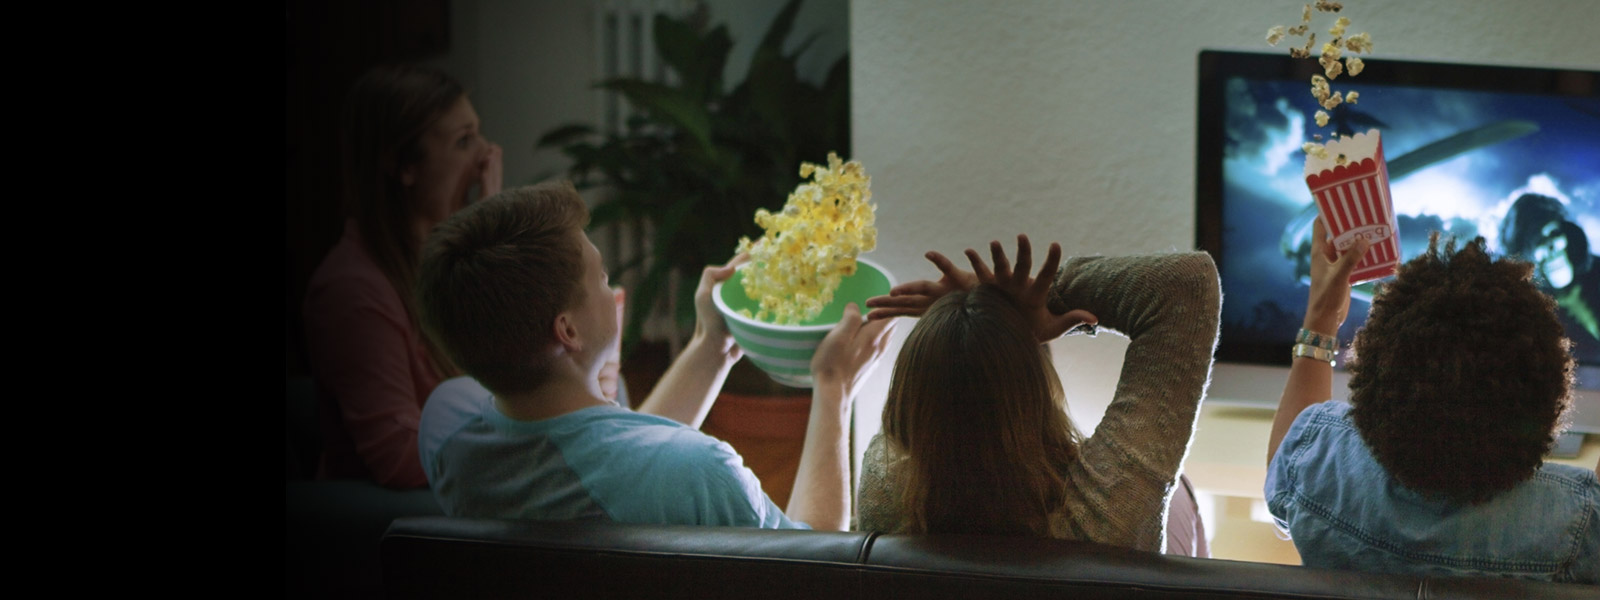 People sitting on couch watching a movie.